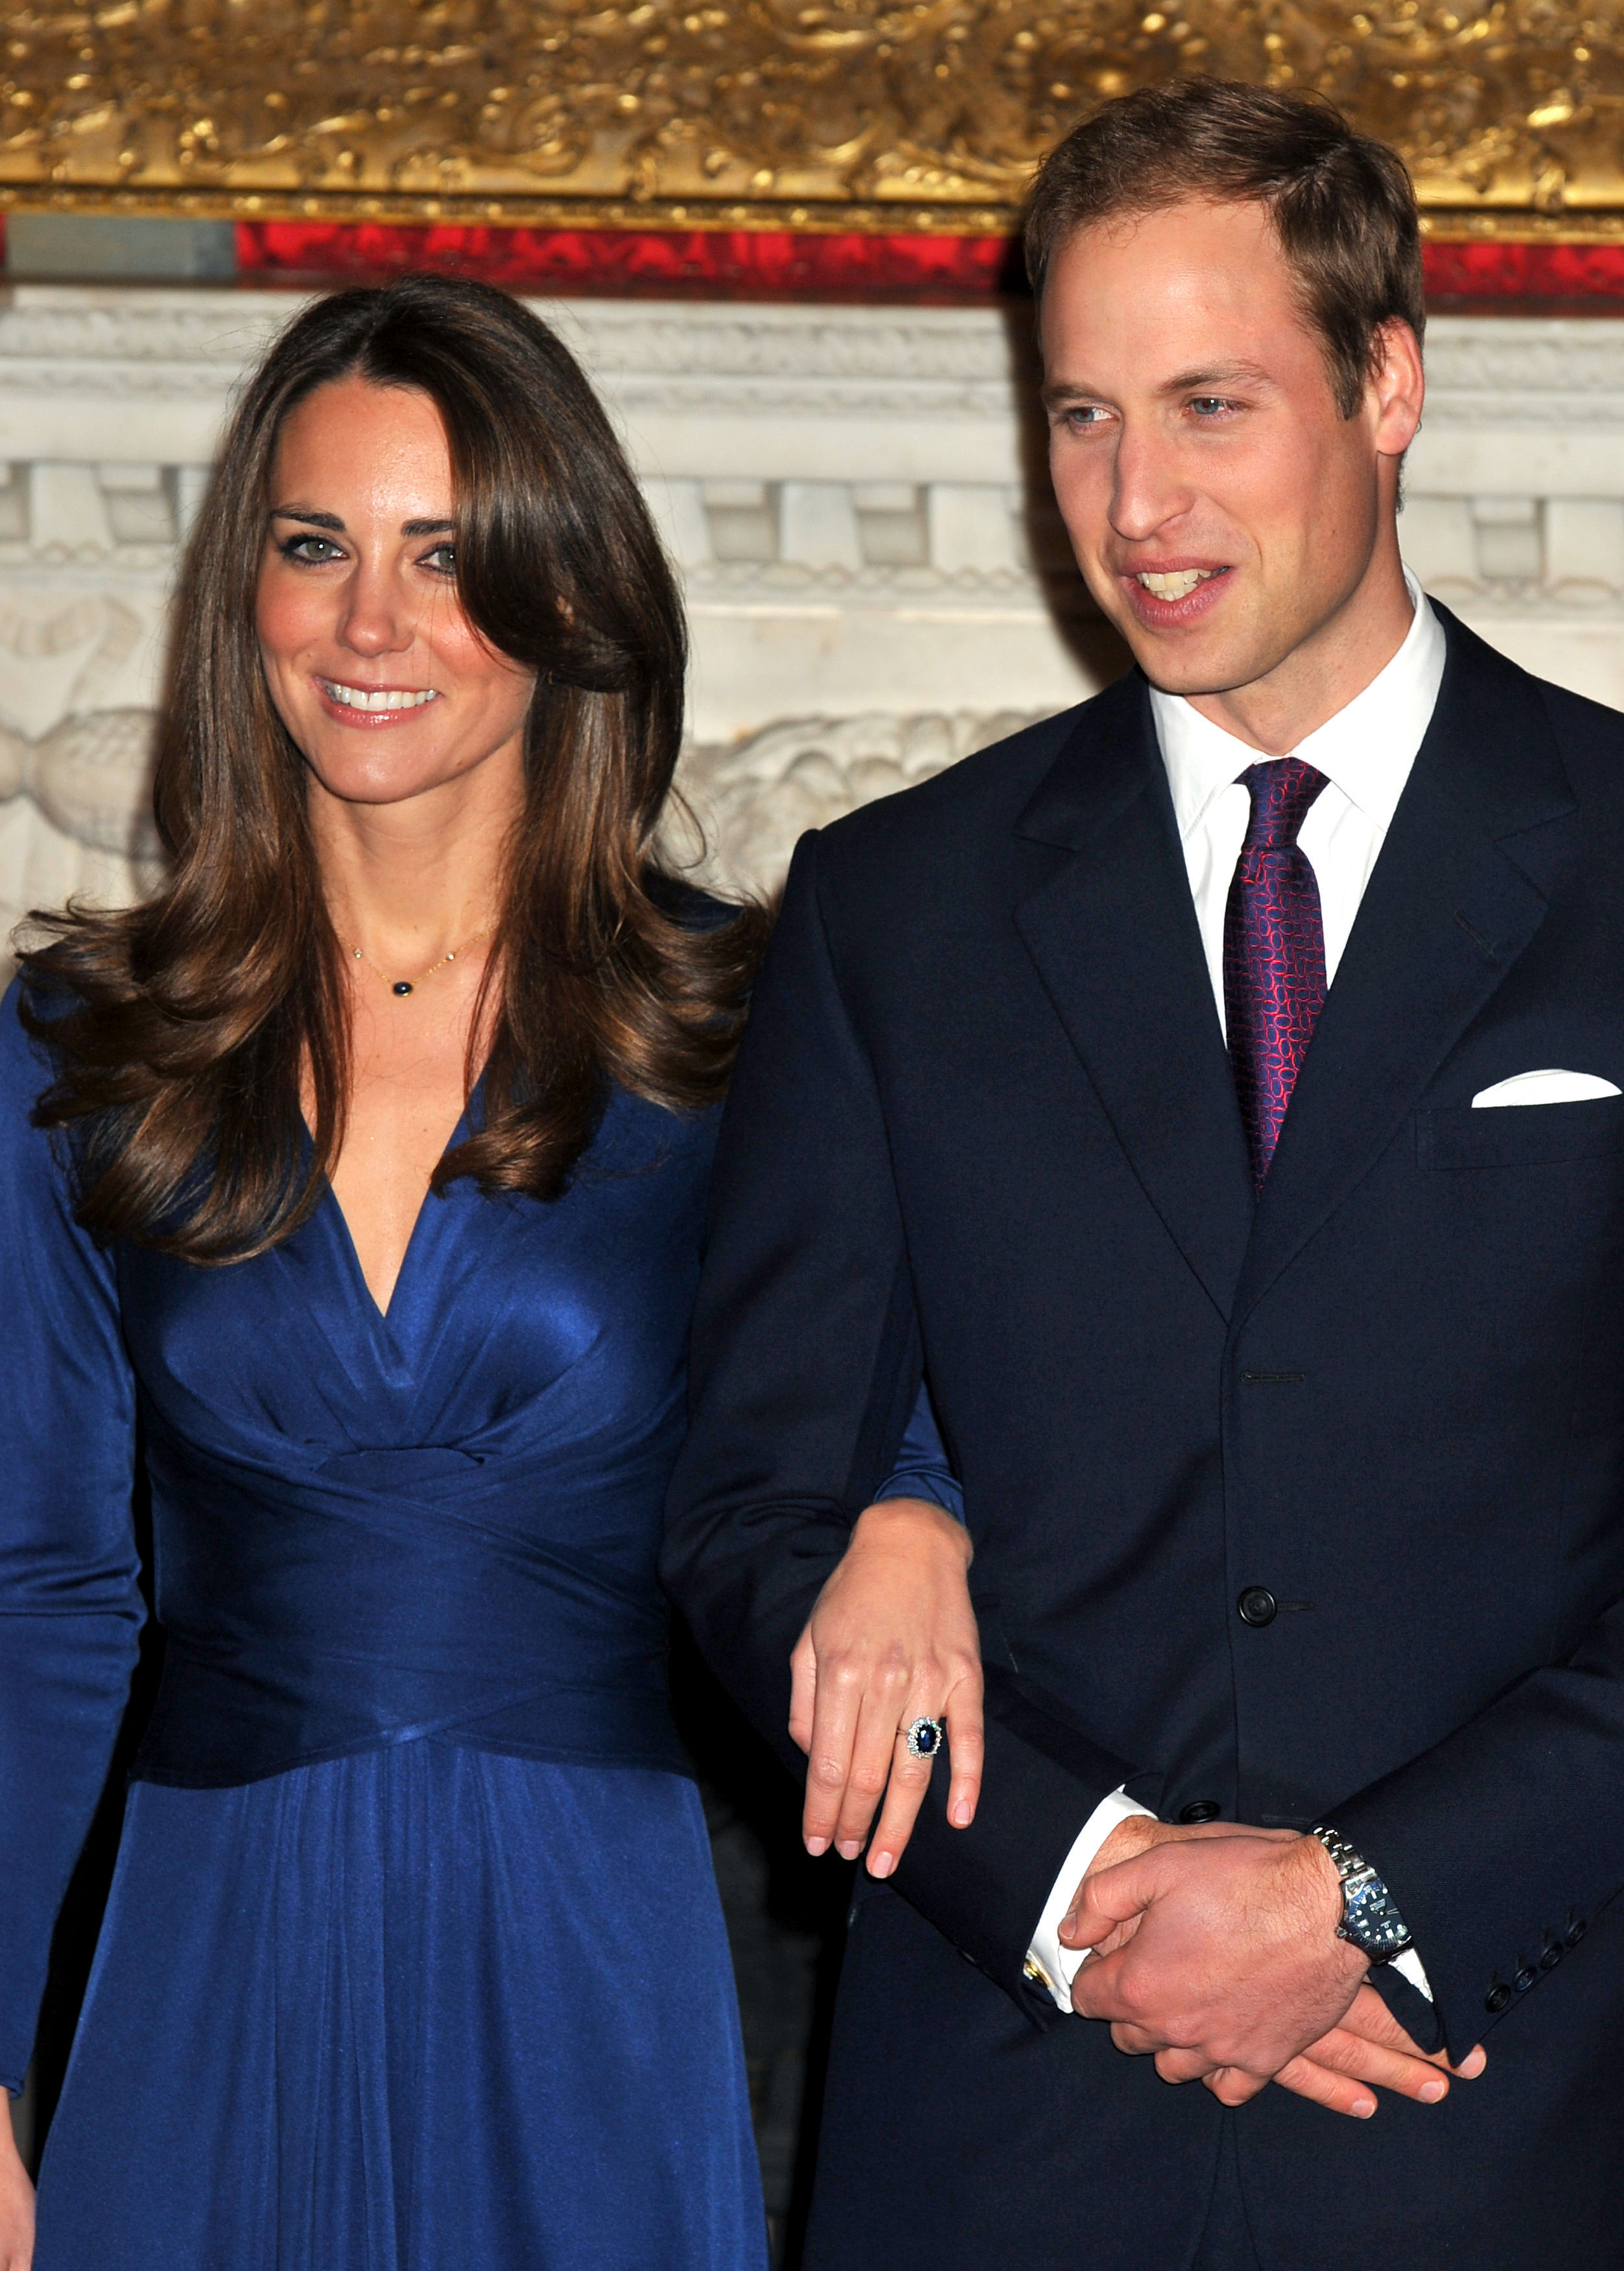 William on the day his engagement with Kate Middleton was announced in 2010 (John Stillwell/PA)